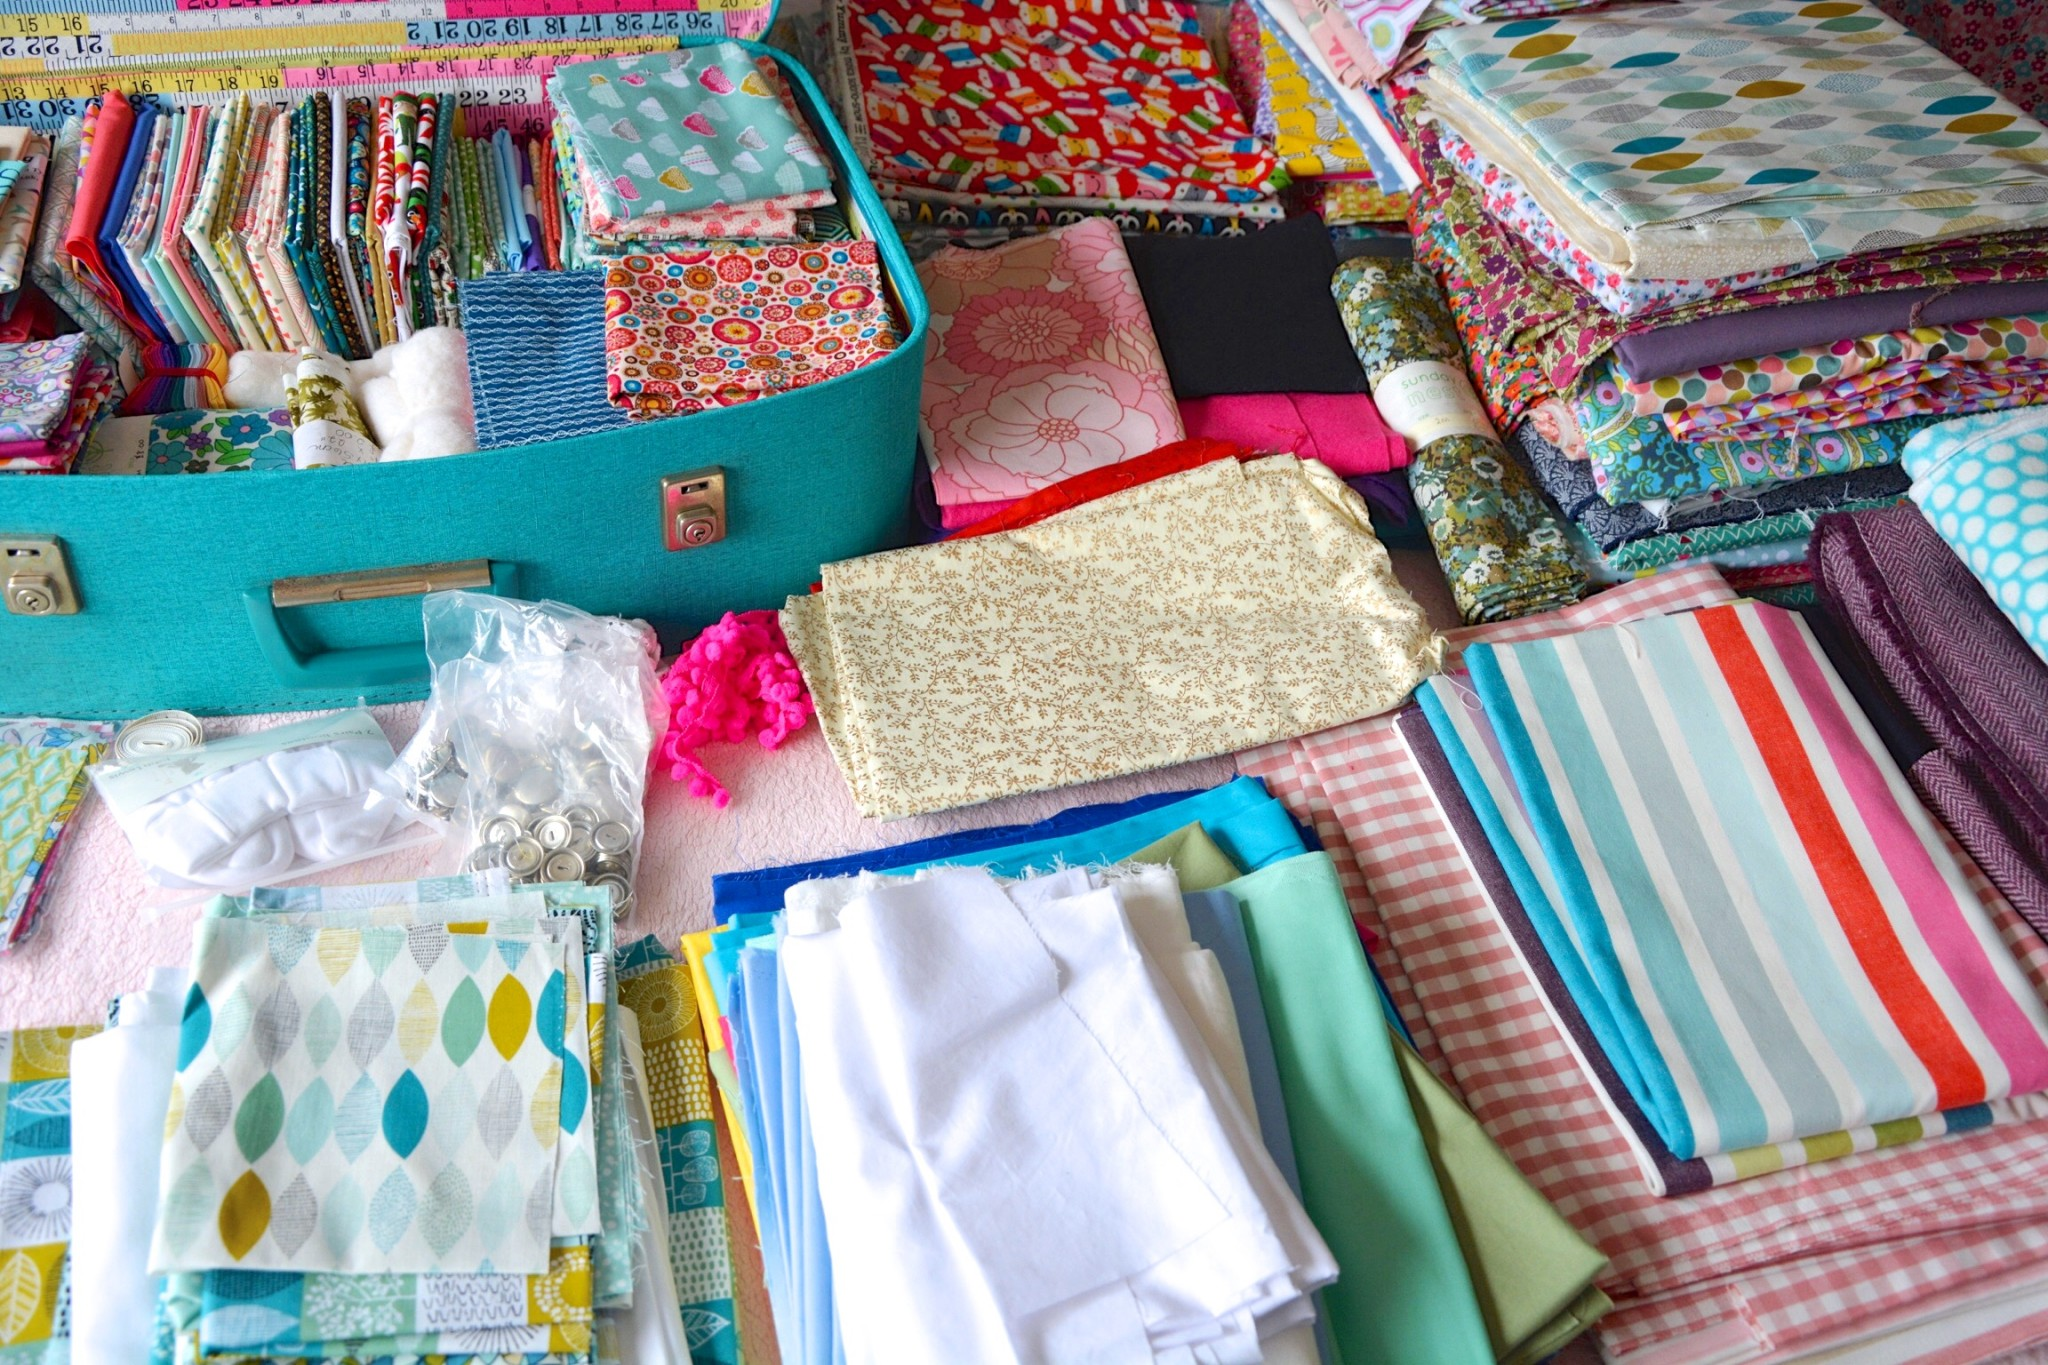 Many piles of fabric